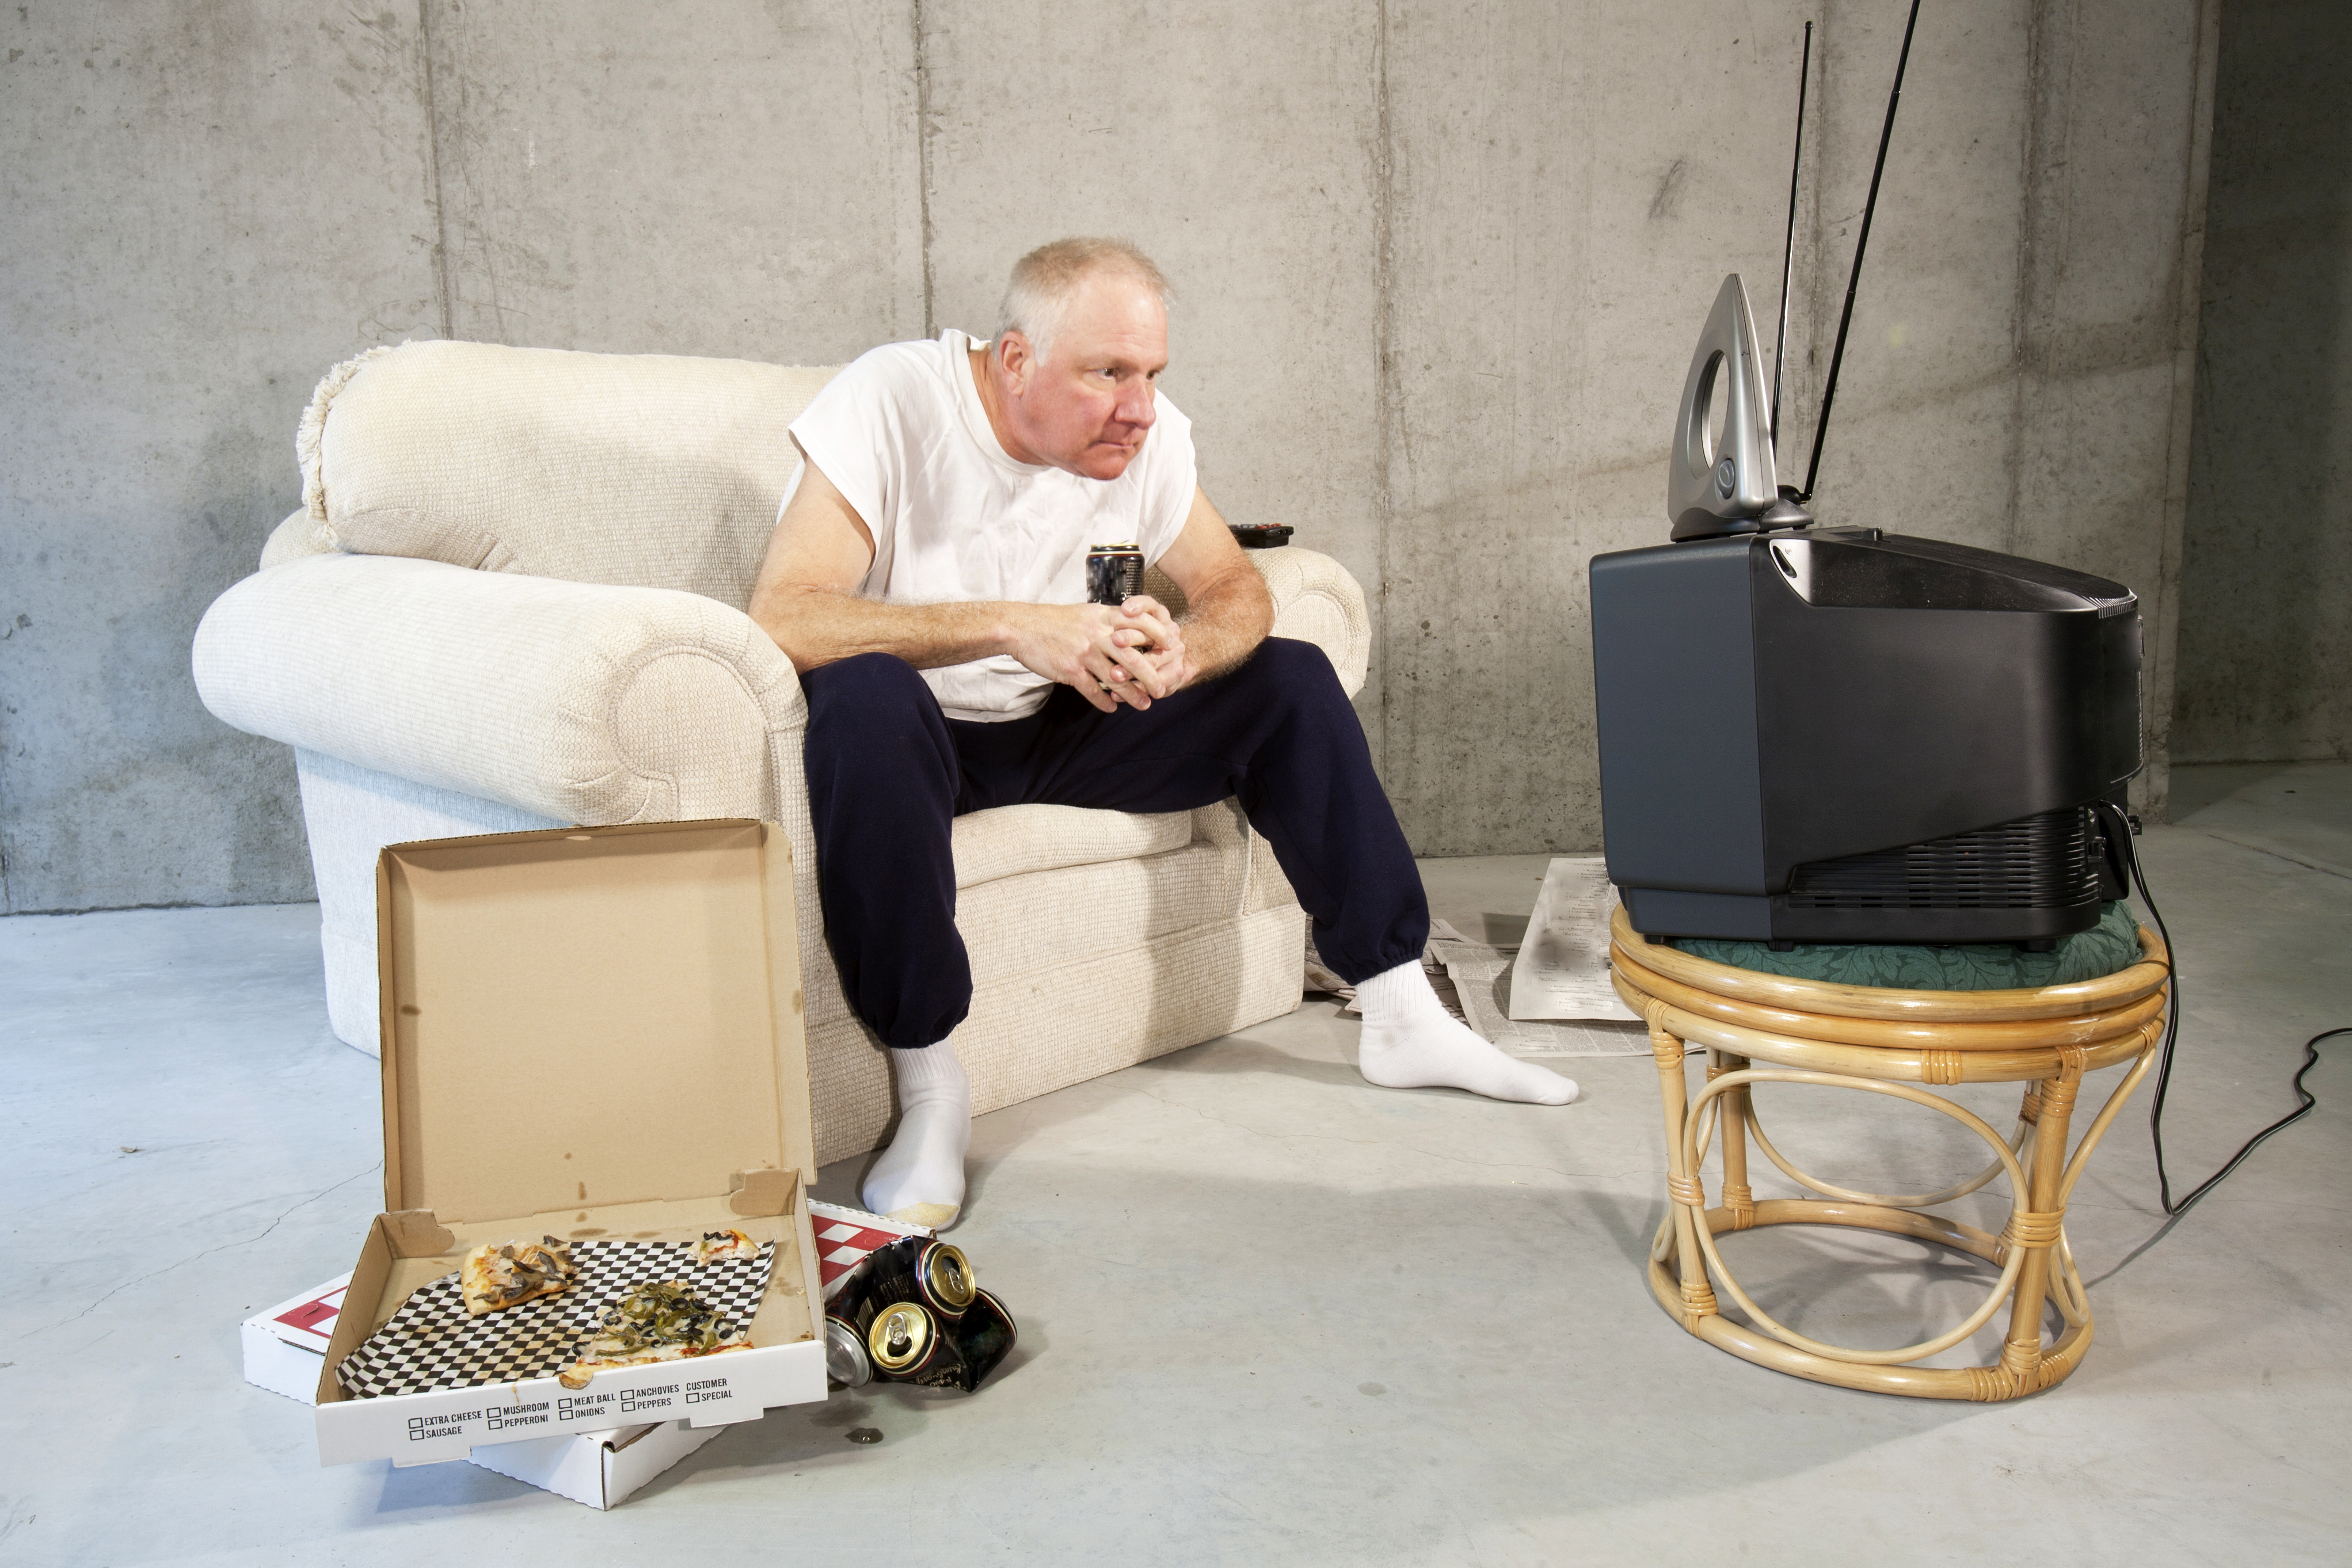 Man dressed in sweatpants and t-shirt watching a tv with rapt attention